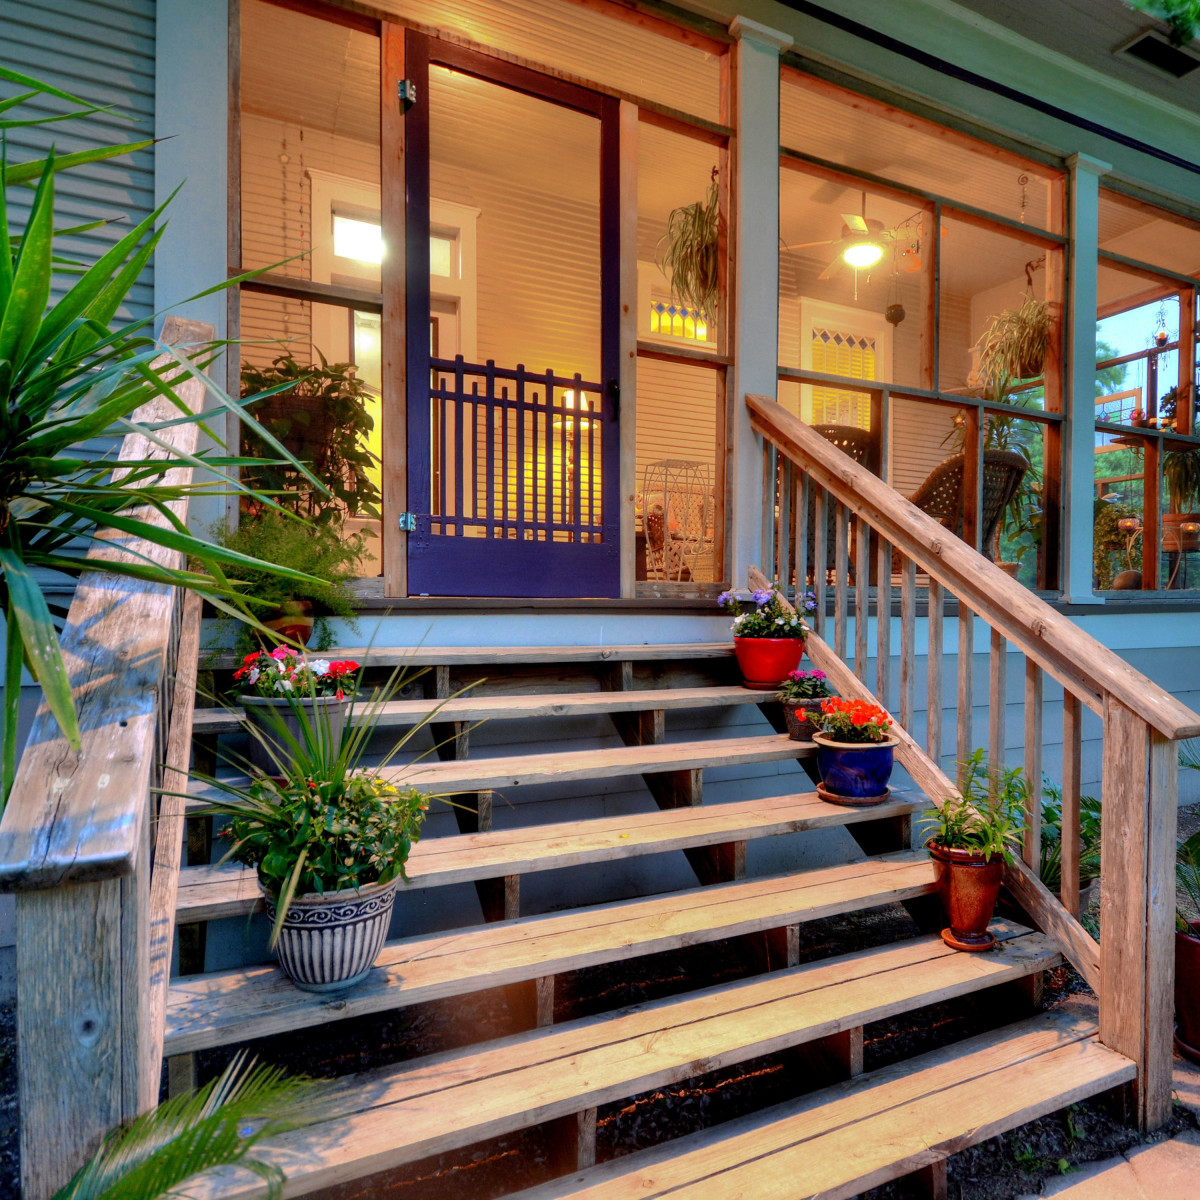 Austin home house 2416 S 2nd Street 78704 front entry